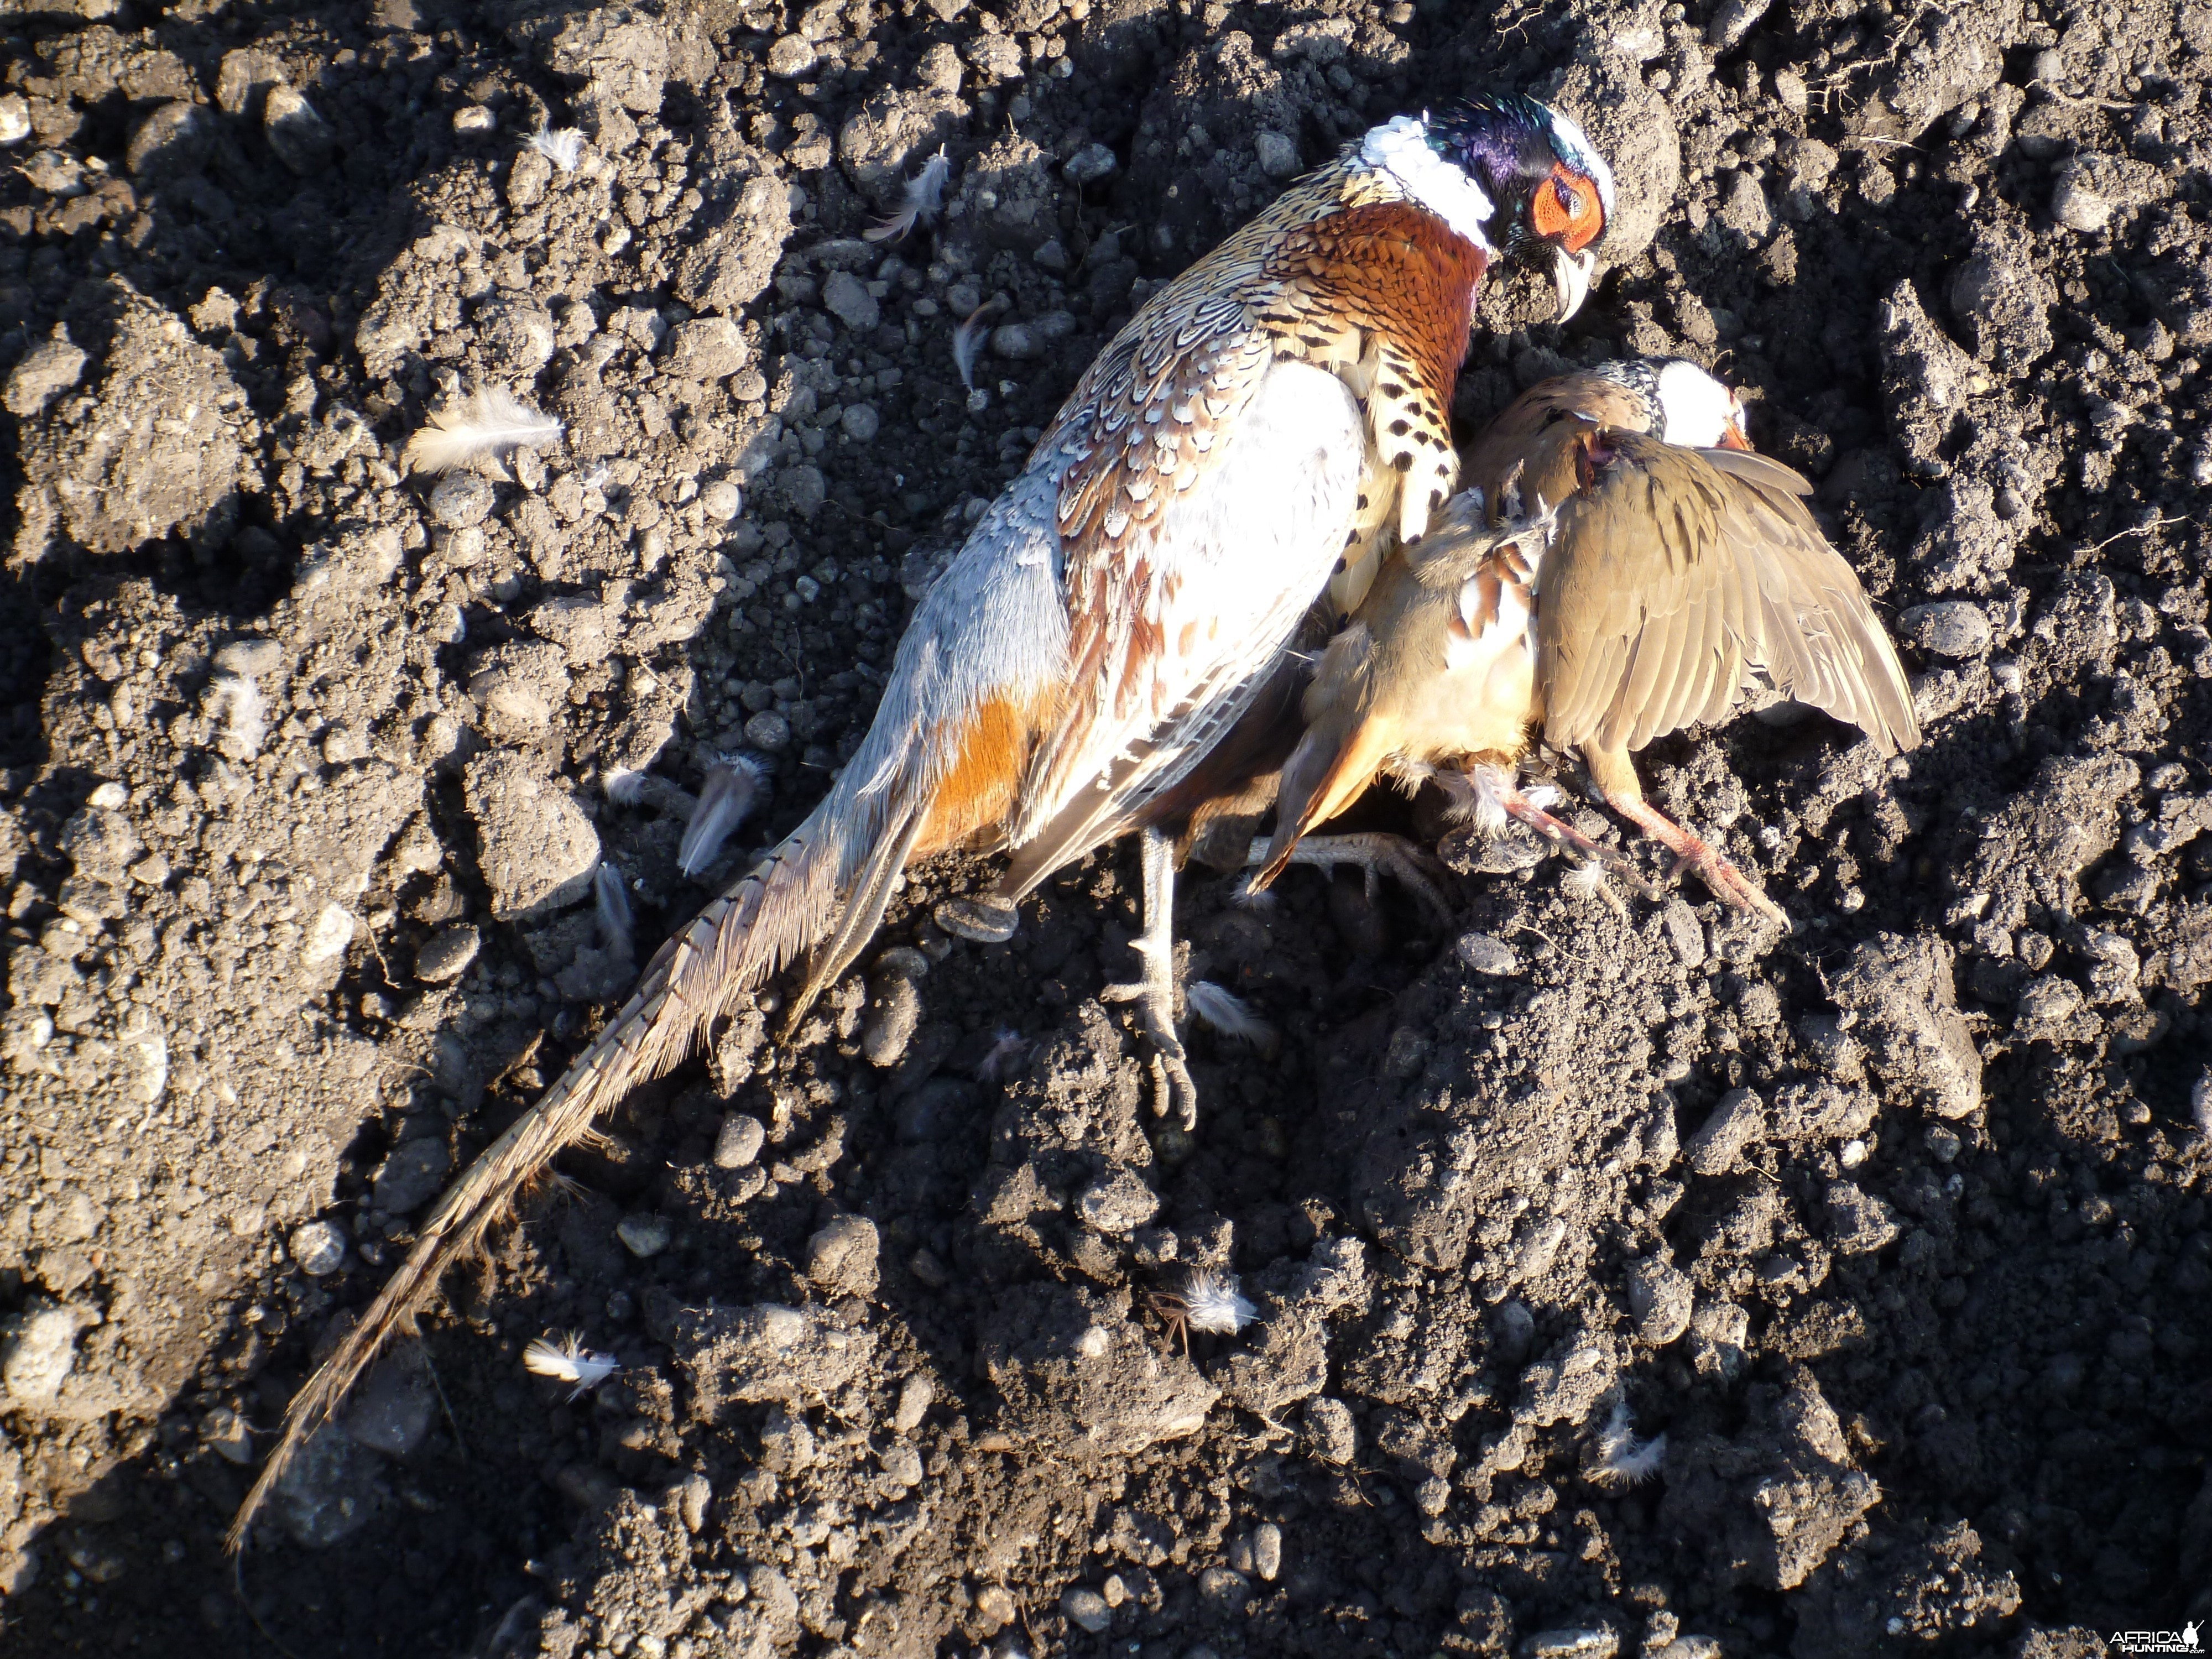 Pheasant and Partridge Hunting in France